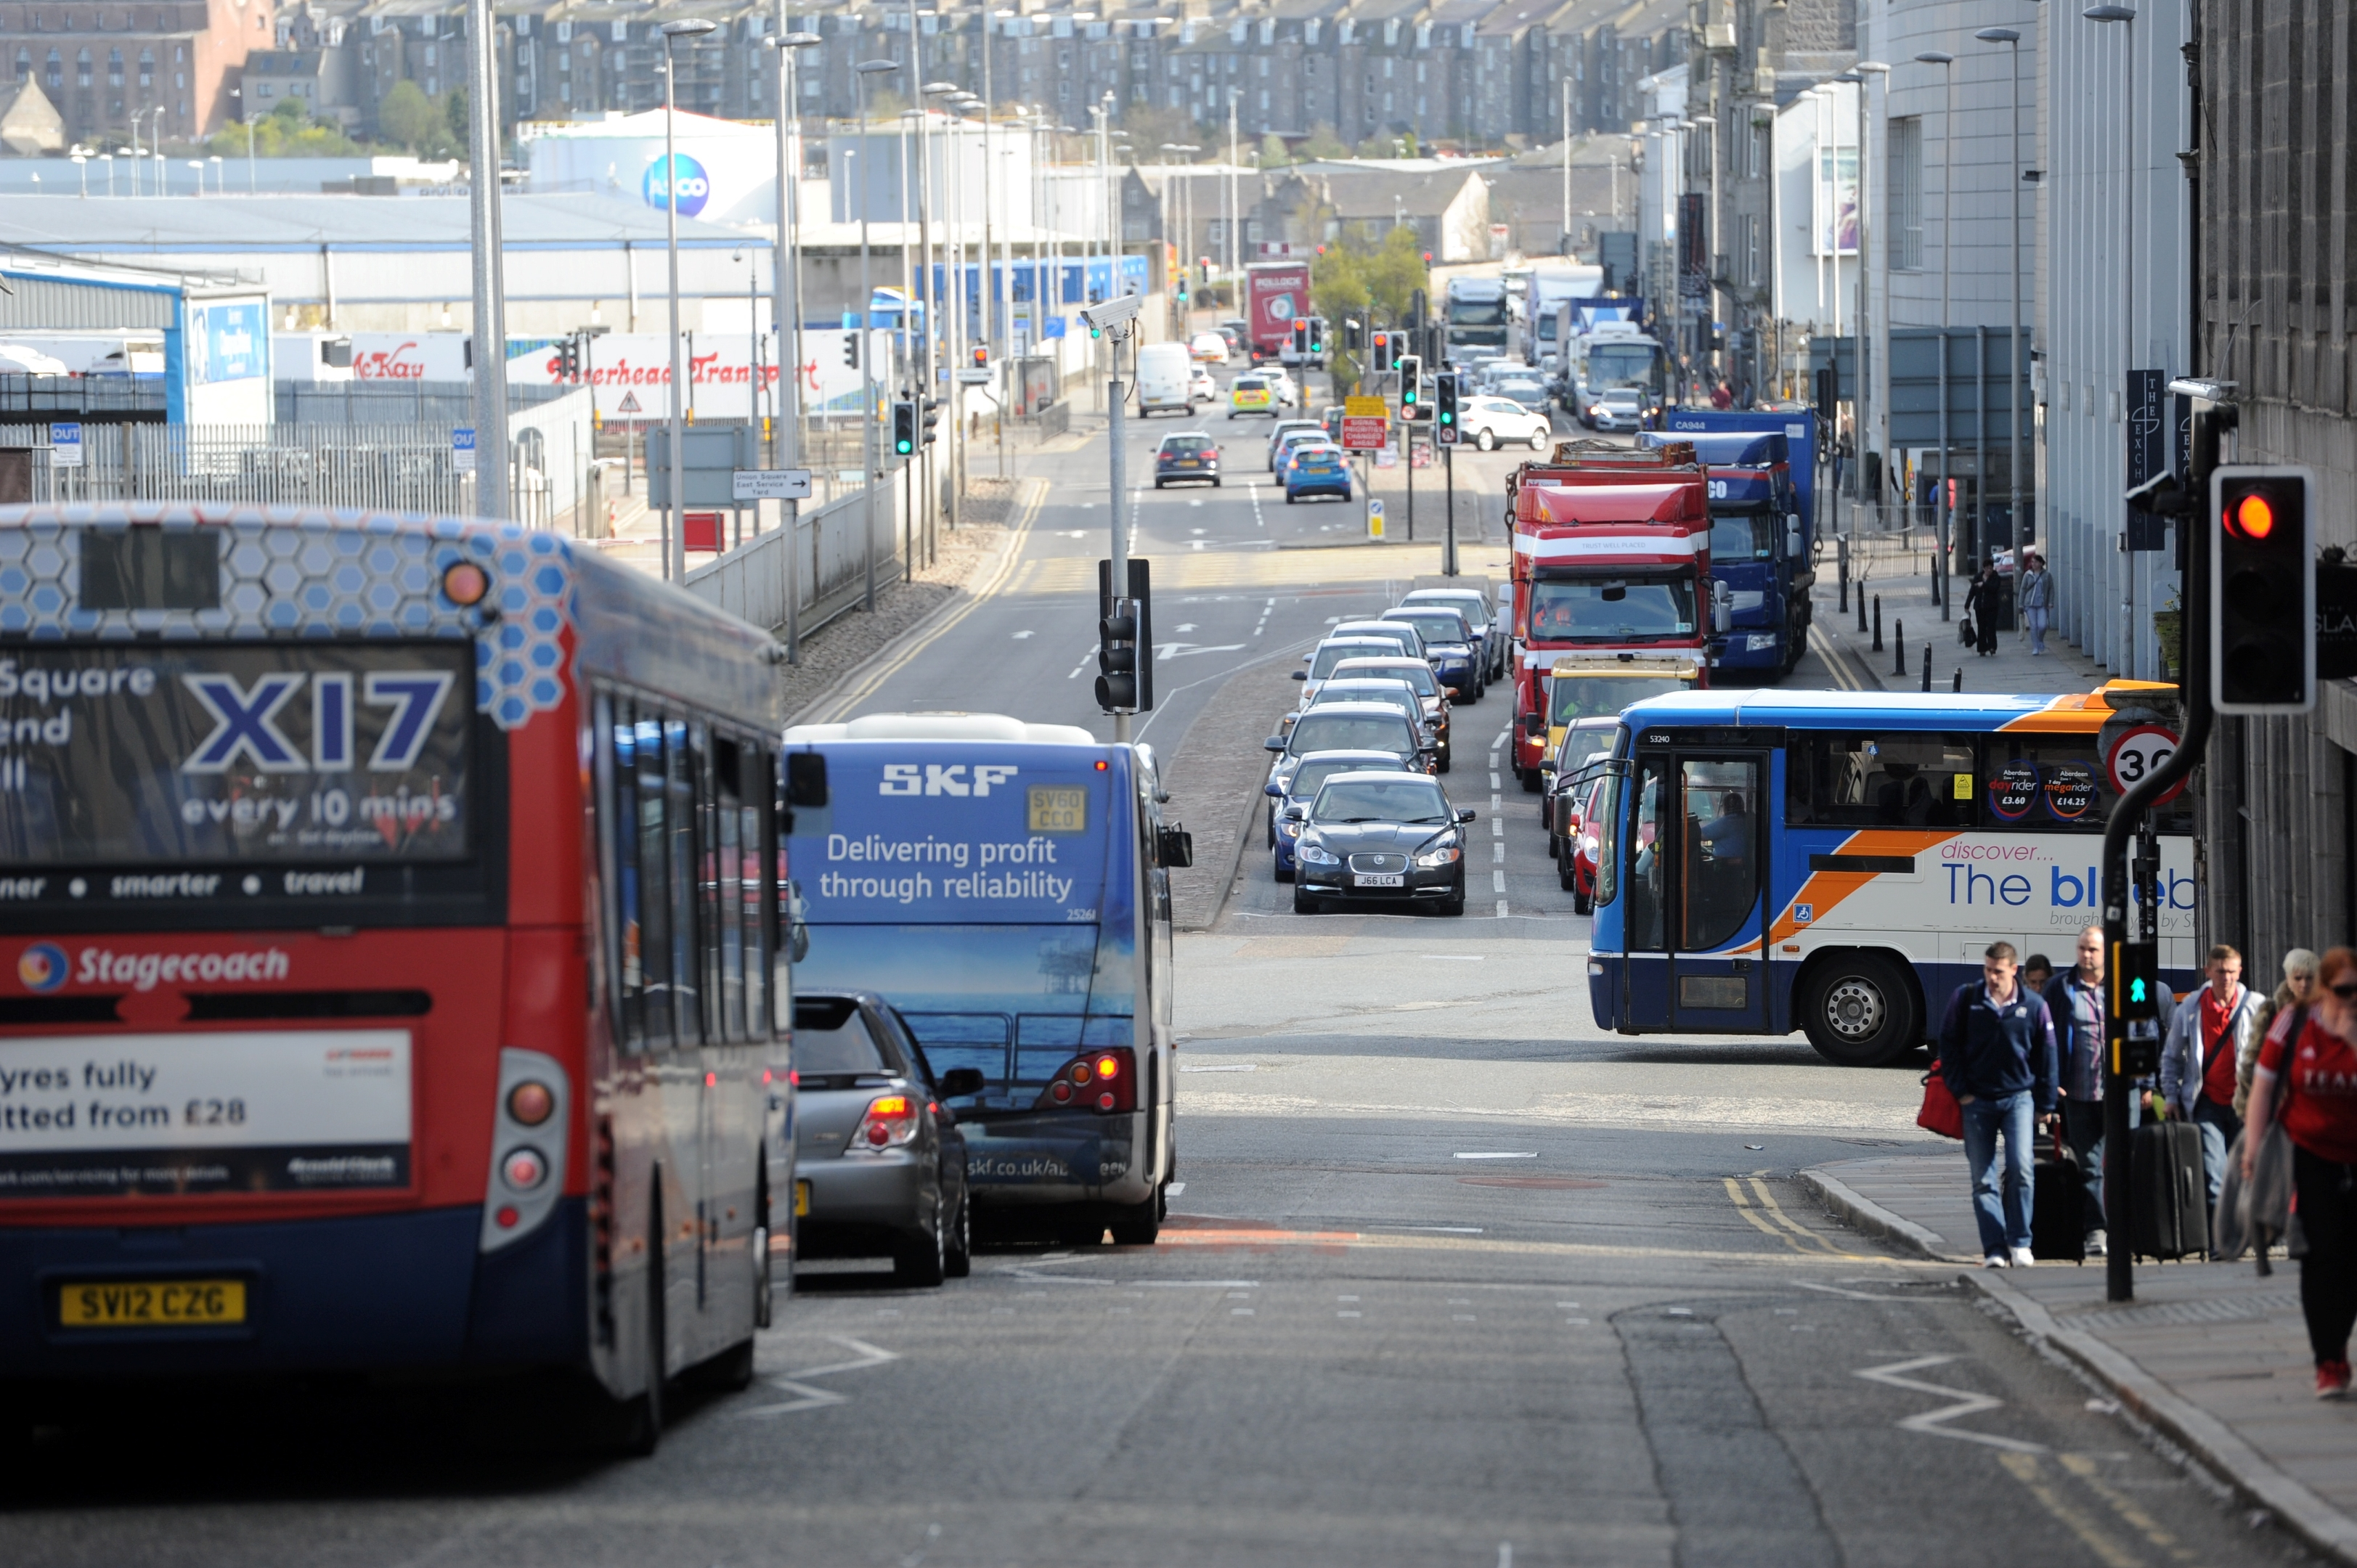 The works will be carried out on Market Street